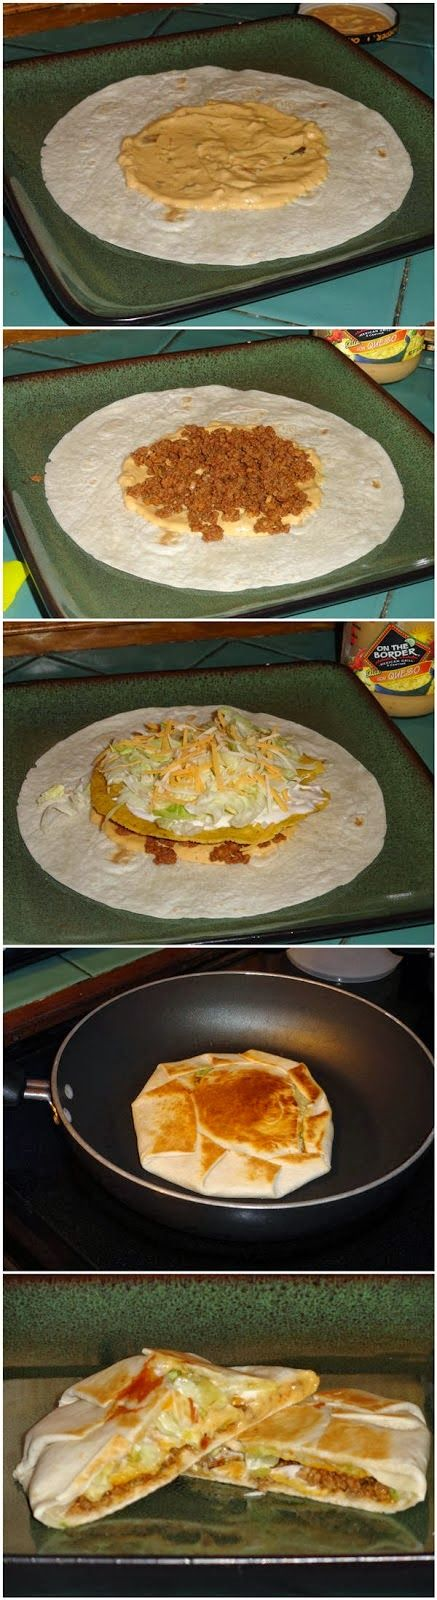 Yummy Crunchwrap Supremes Crunchwrap Supremes, Homemade Yummy! Its so easy I wonder why I had never thought to do it at home before. You can completely customize these to anyones liking and theyve made great dinners for when only one or two of us are home. So quick and easy!: